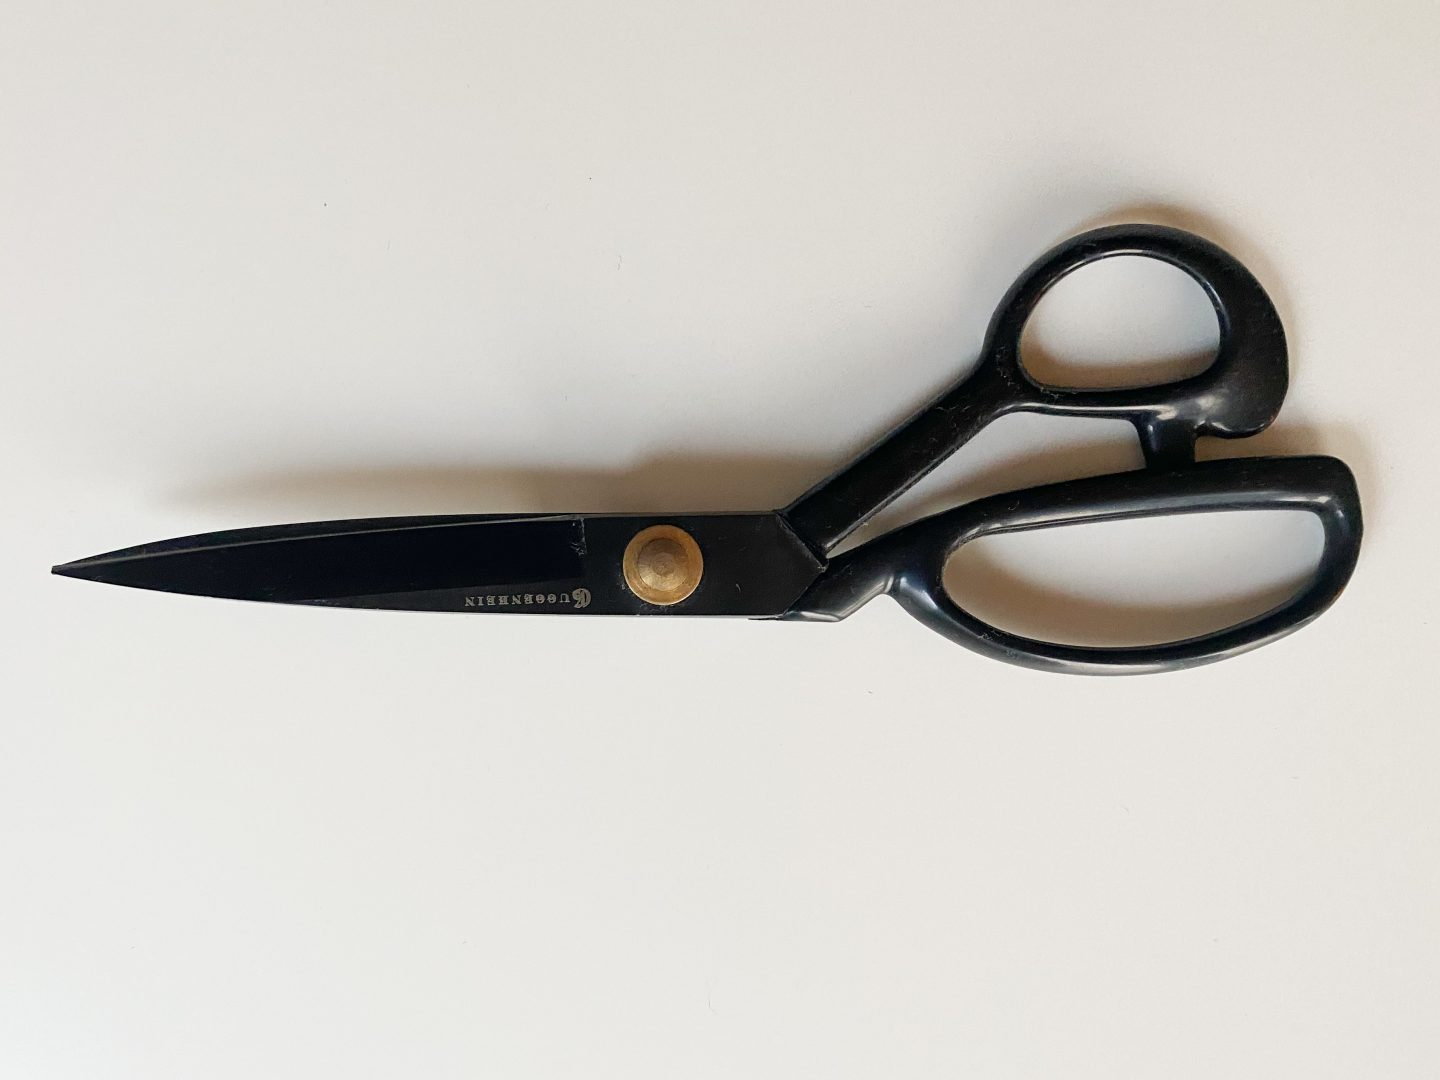 Image of a black pair of shears against a white background.